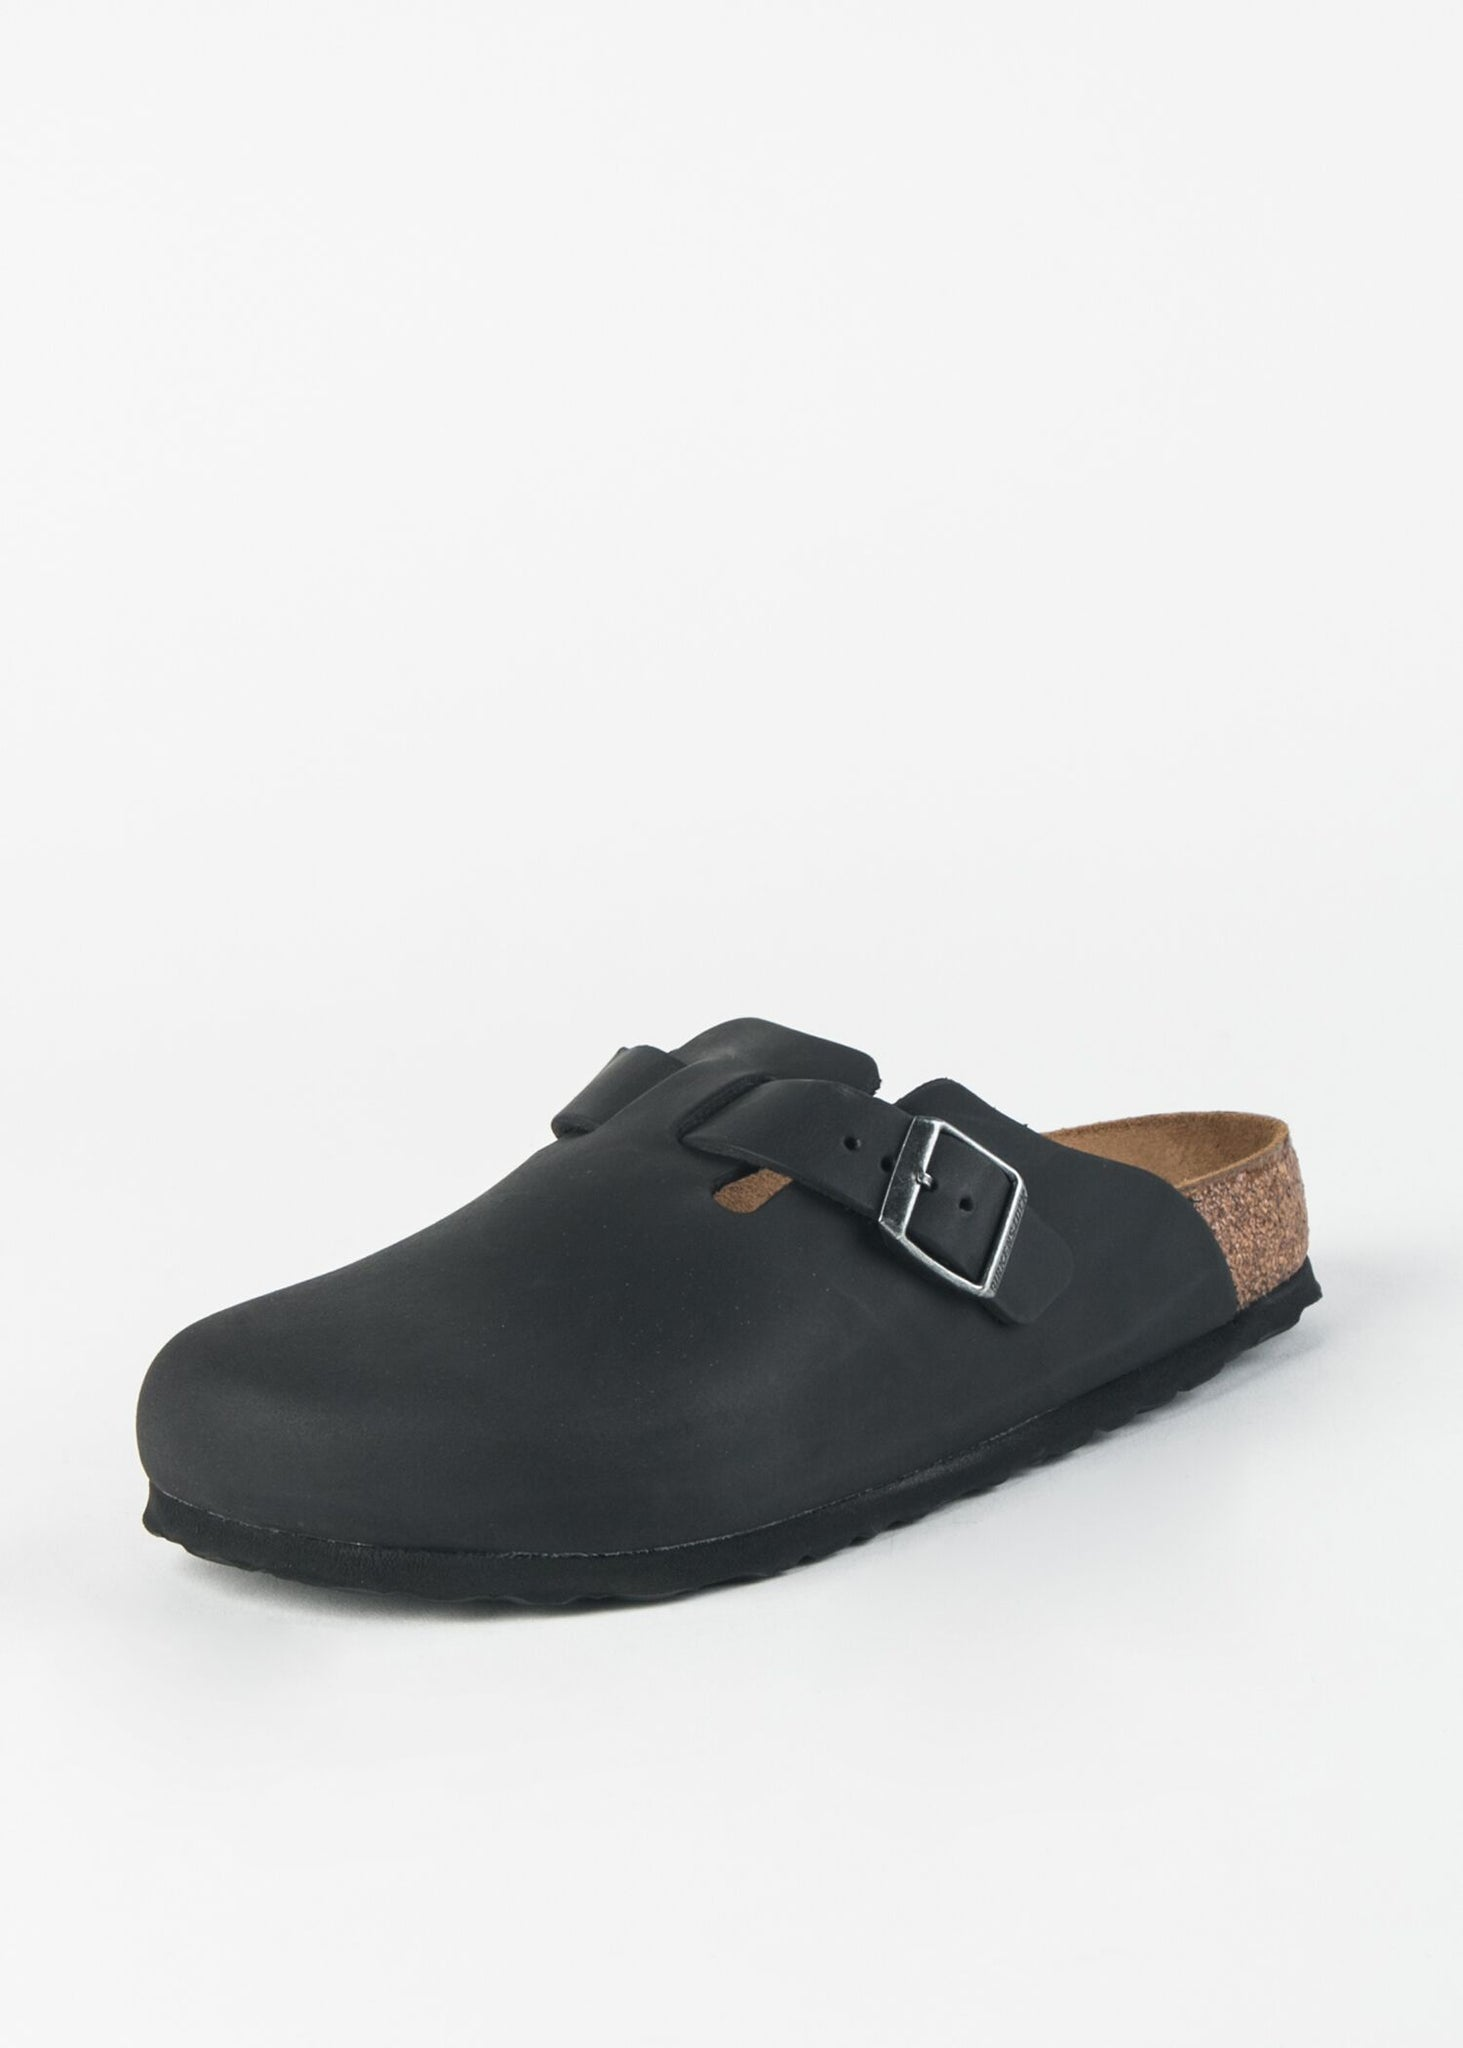 BOSTON LEATHER MULE